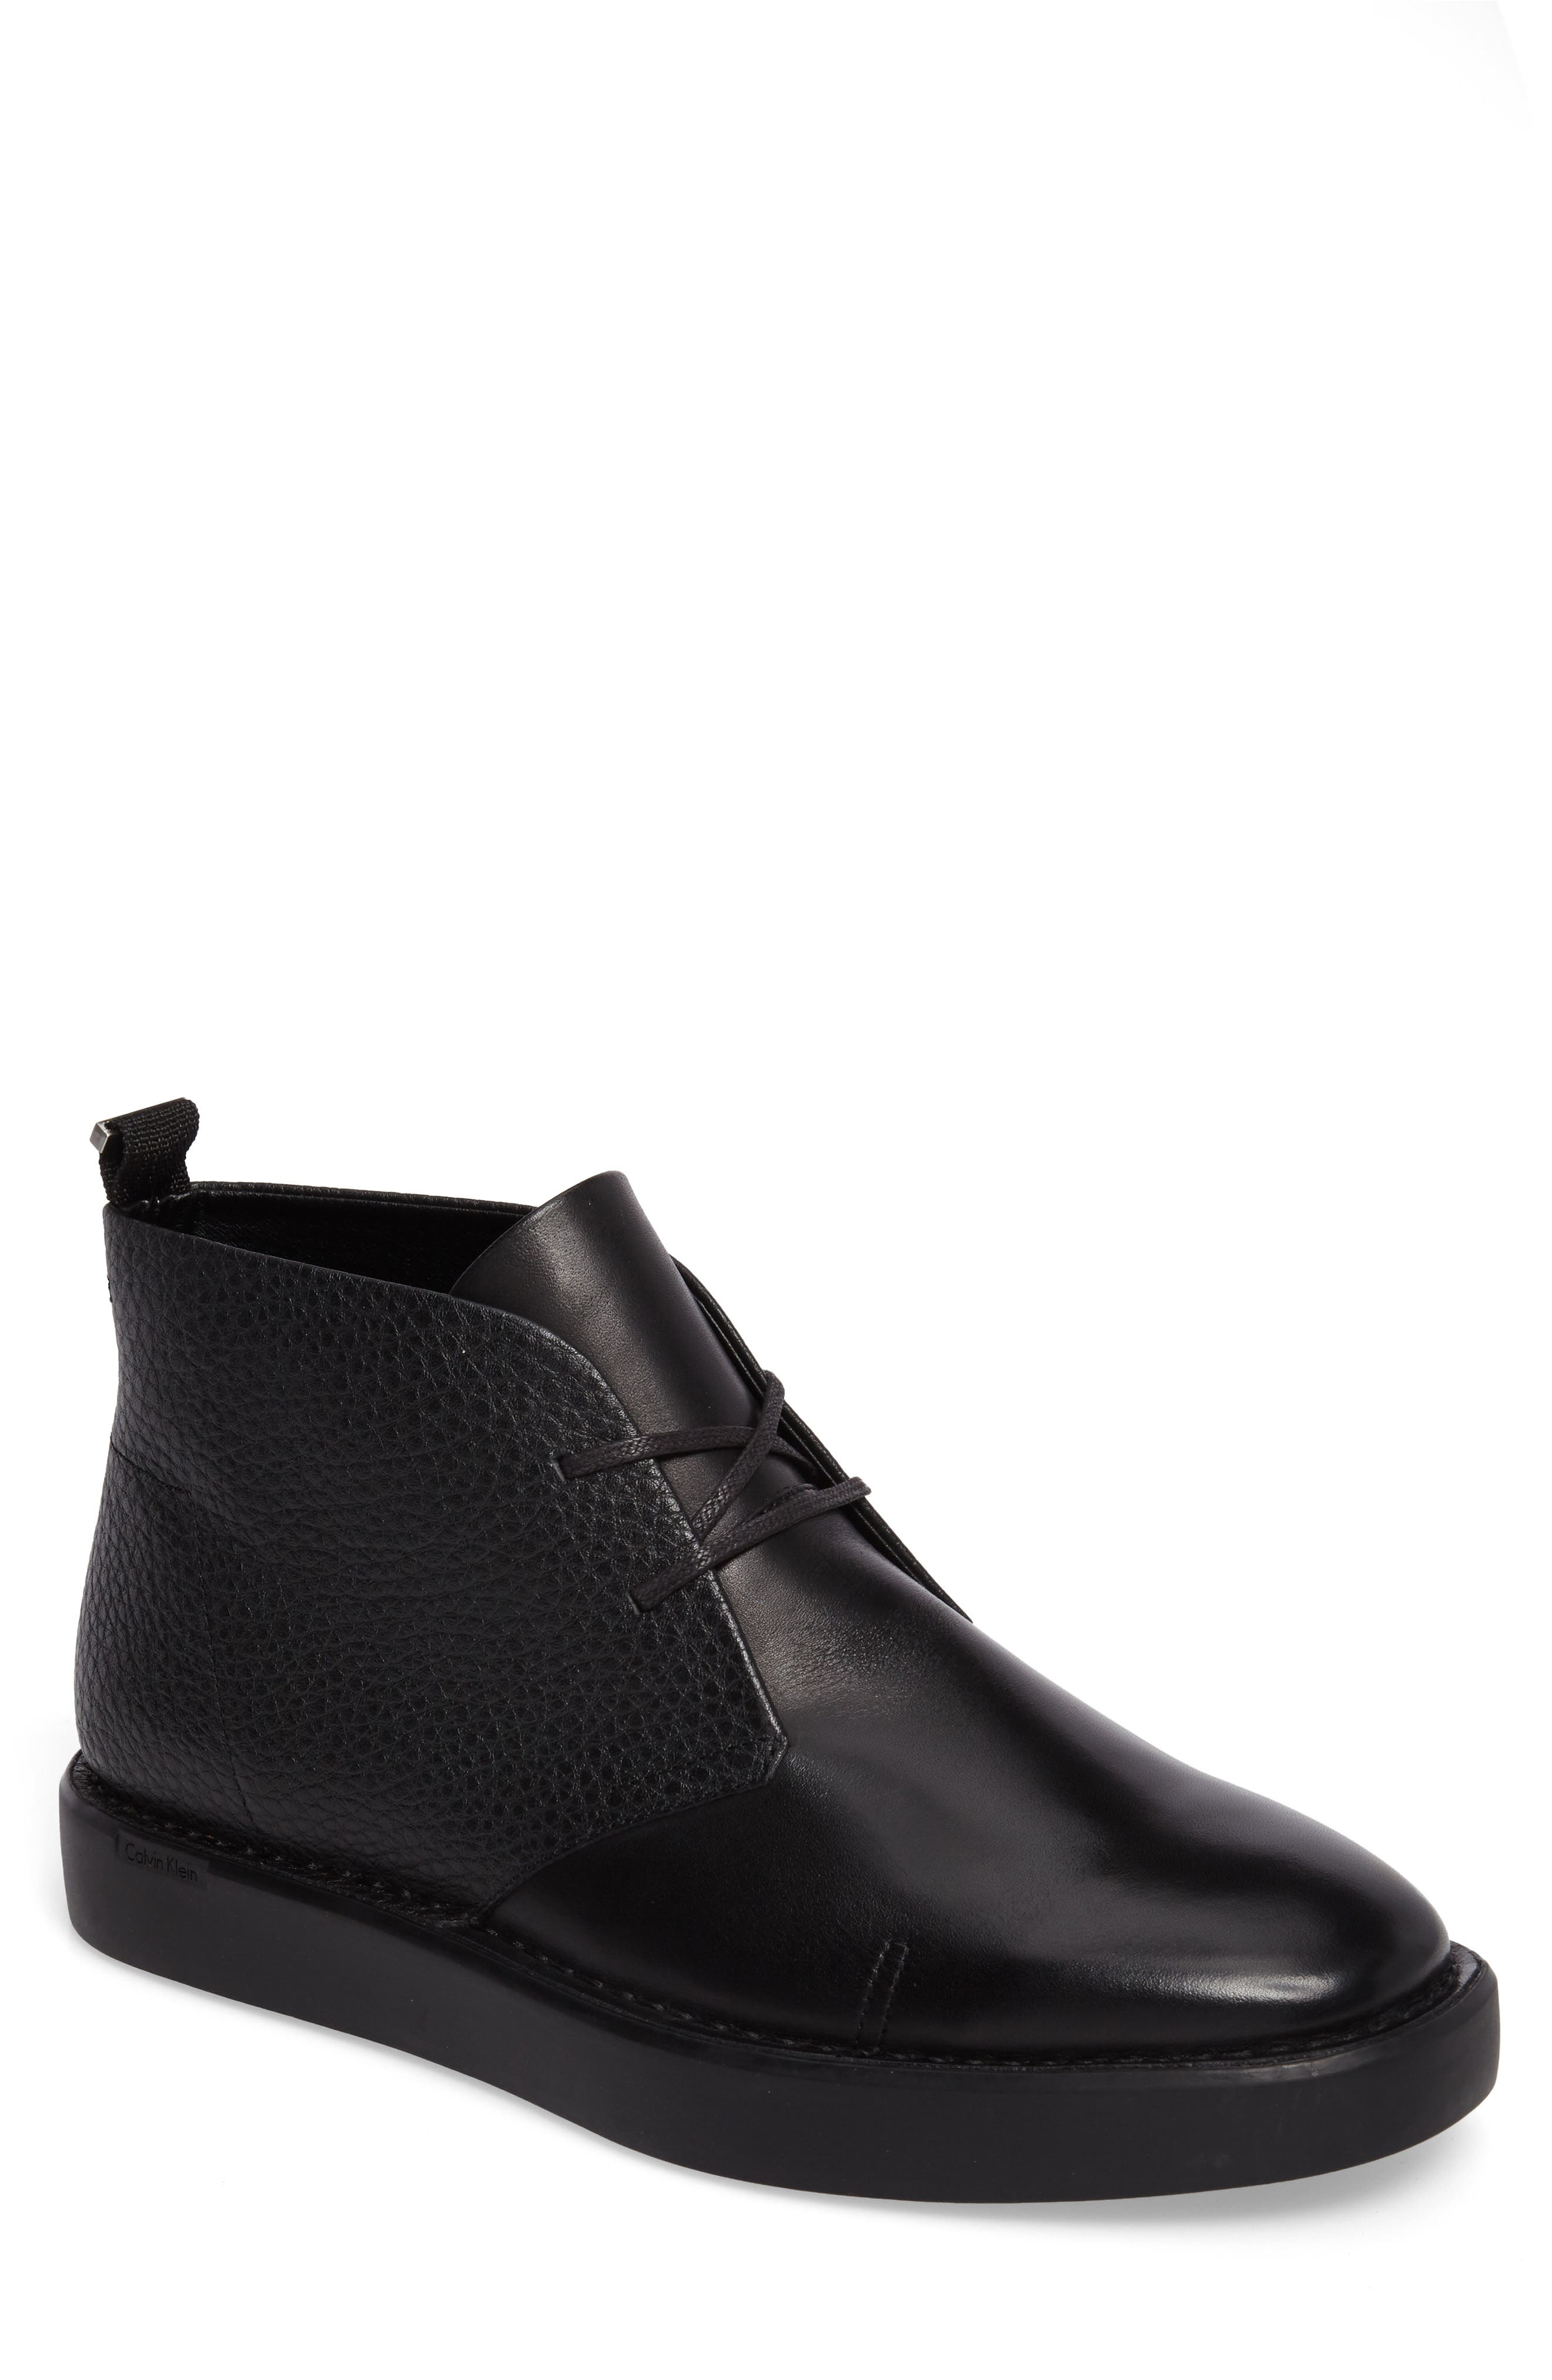 Alternate Image 1 Selected - Calvin Klein Galway Chukka Boot (Men)